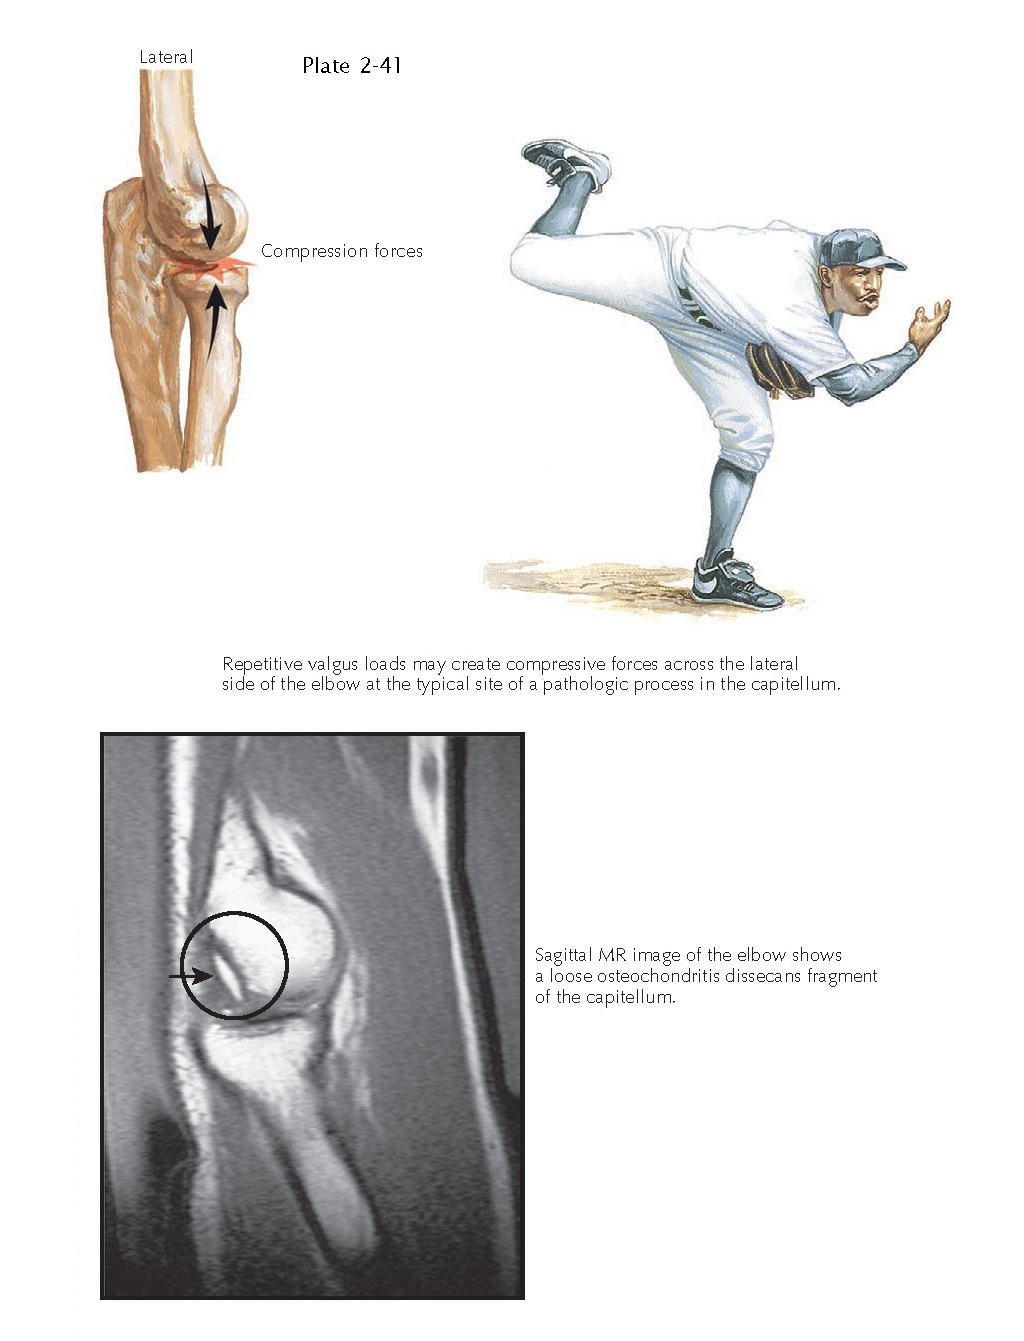 OSTEOCHONDRITIS DISSECANS OF THE ELBOW